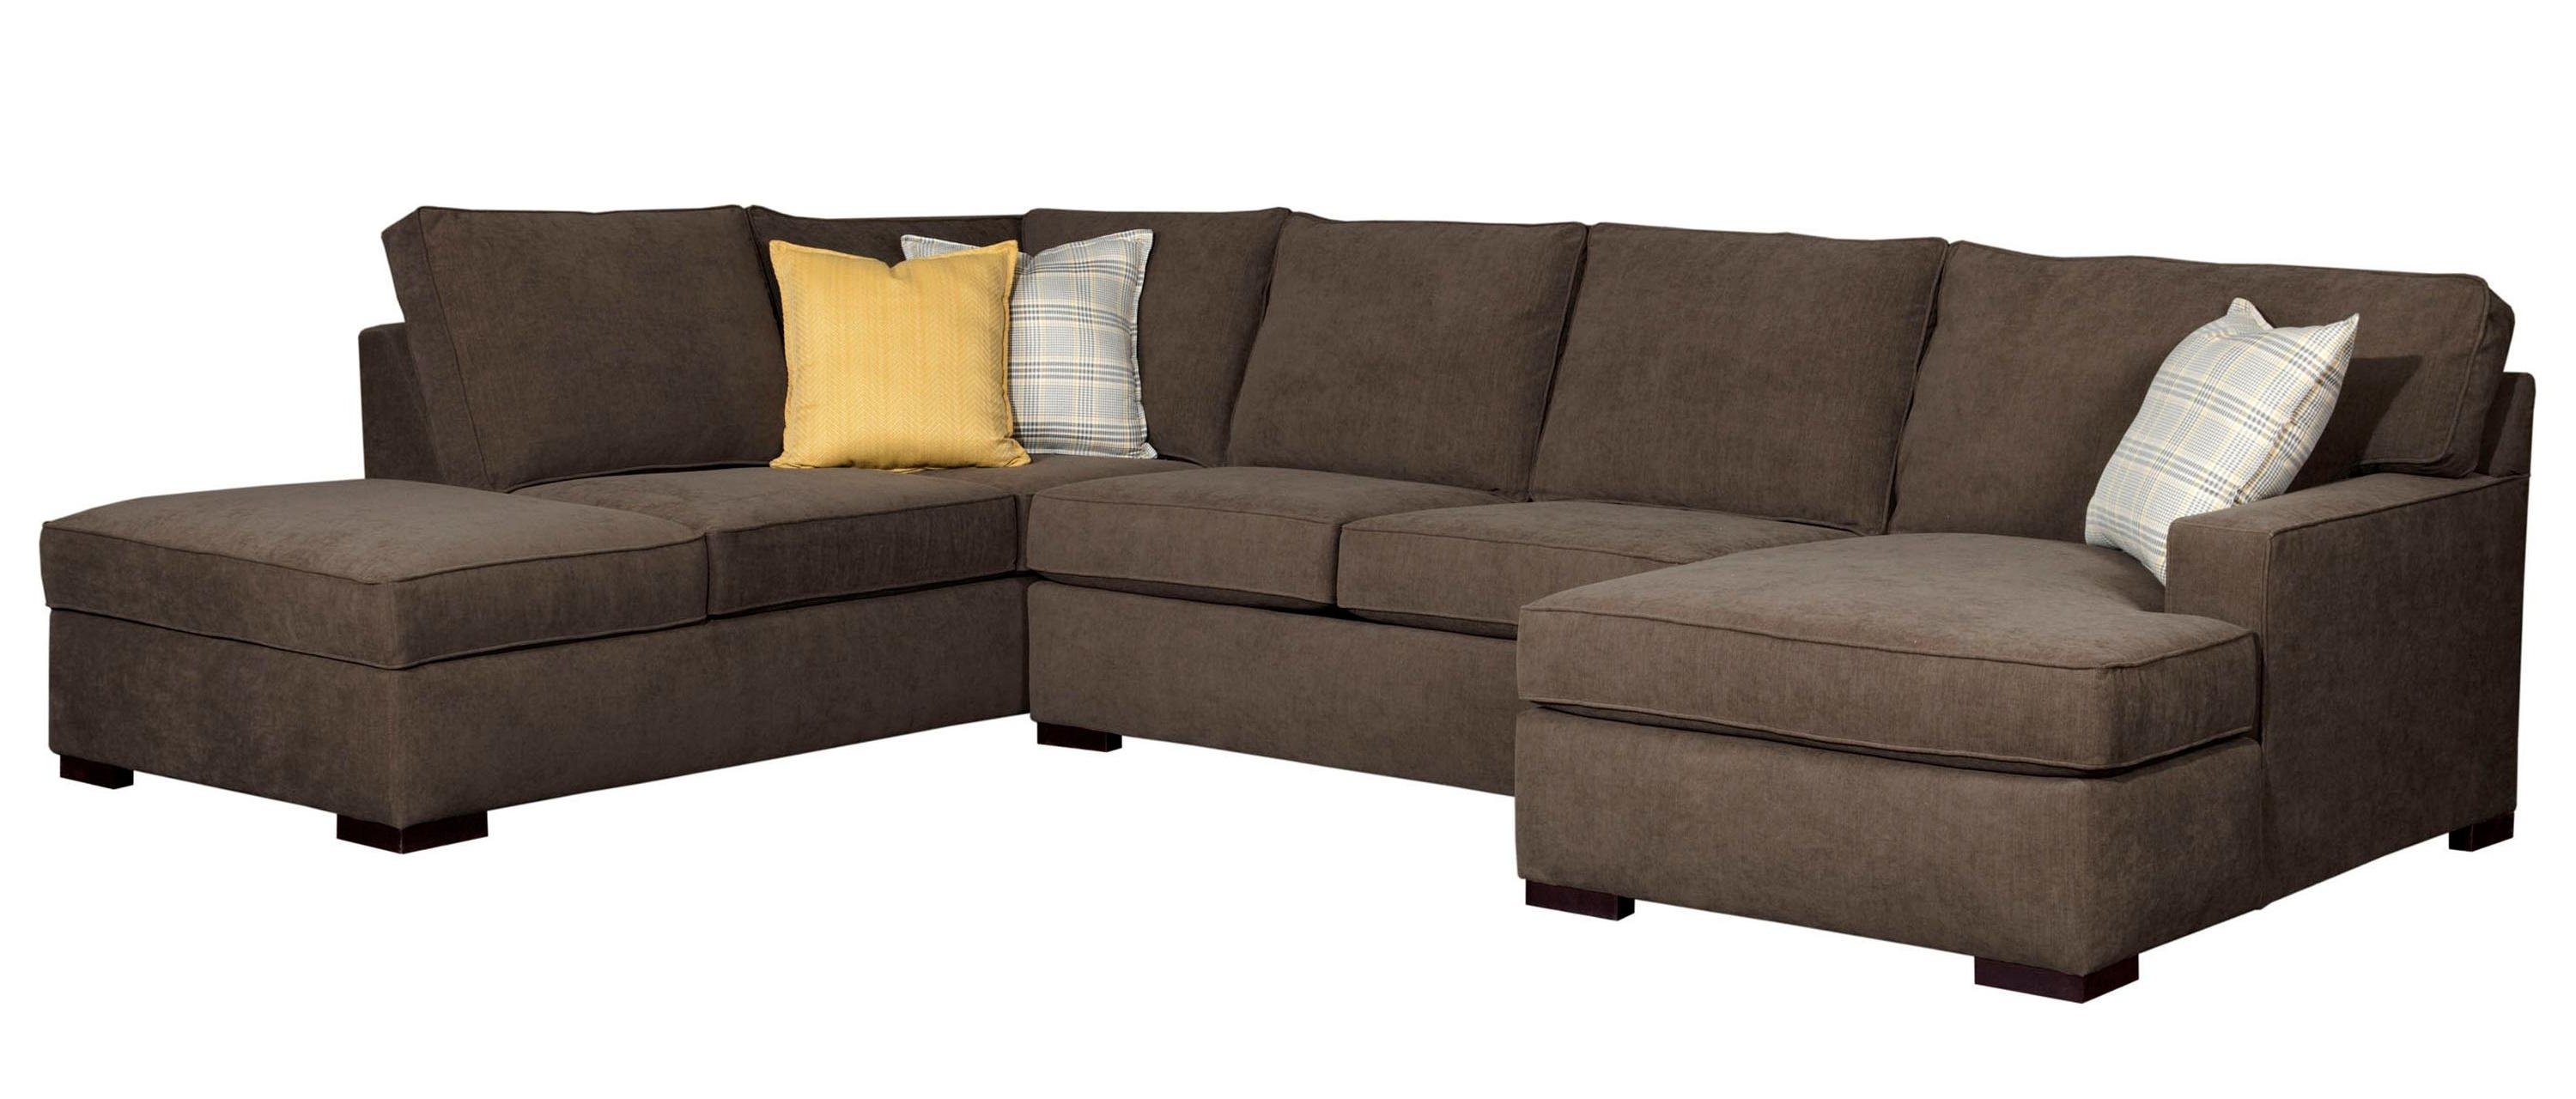 Sam Levitz Sectional Sofas With Well Known Broyhill Furniture Raphael Contemporary Sectional Sofa With Laf (View 3 of 20)